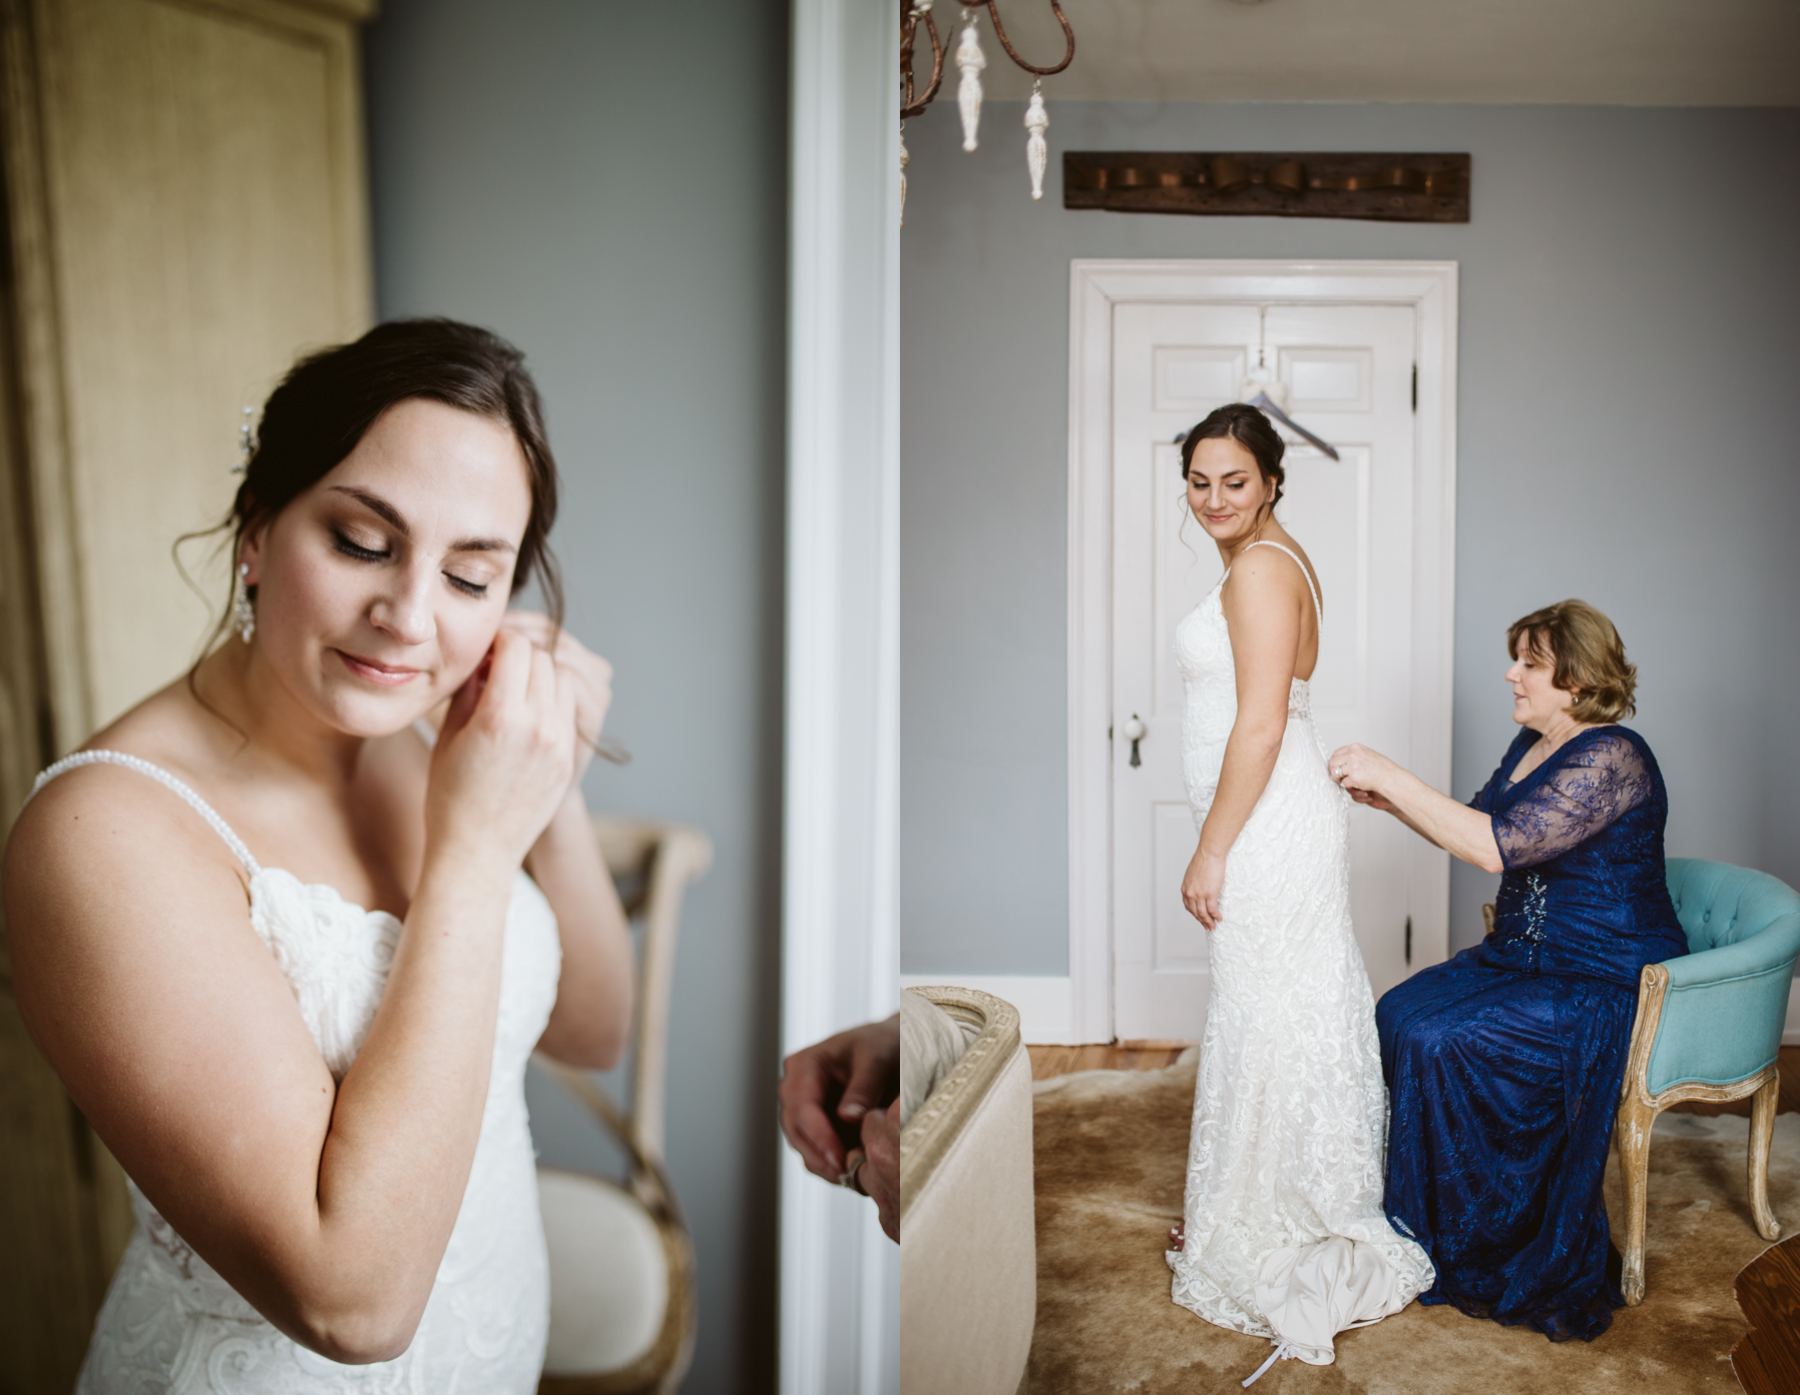 Bride putting on her earrings and her dress from Clarice's bridal at stone house of st charles in Missouri